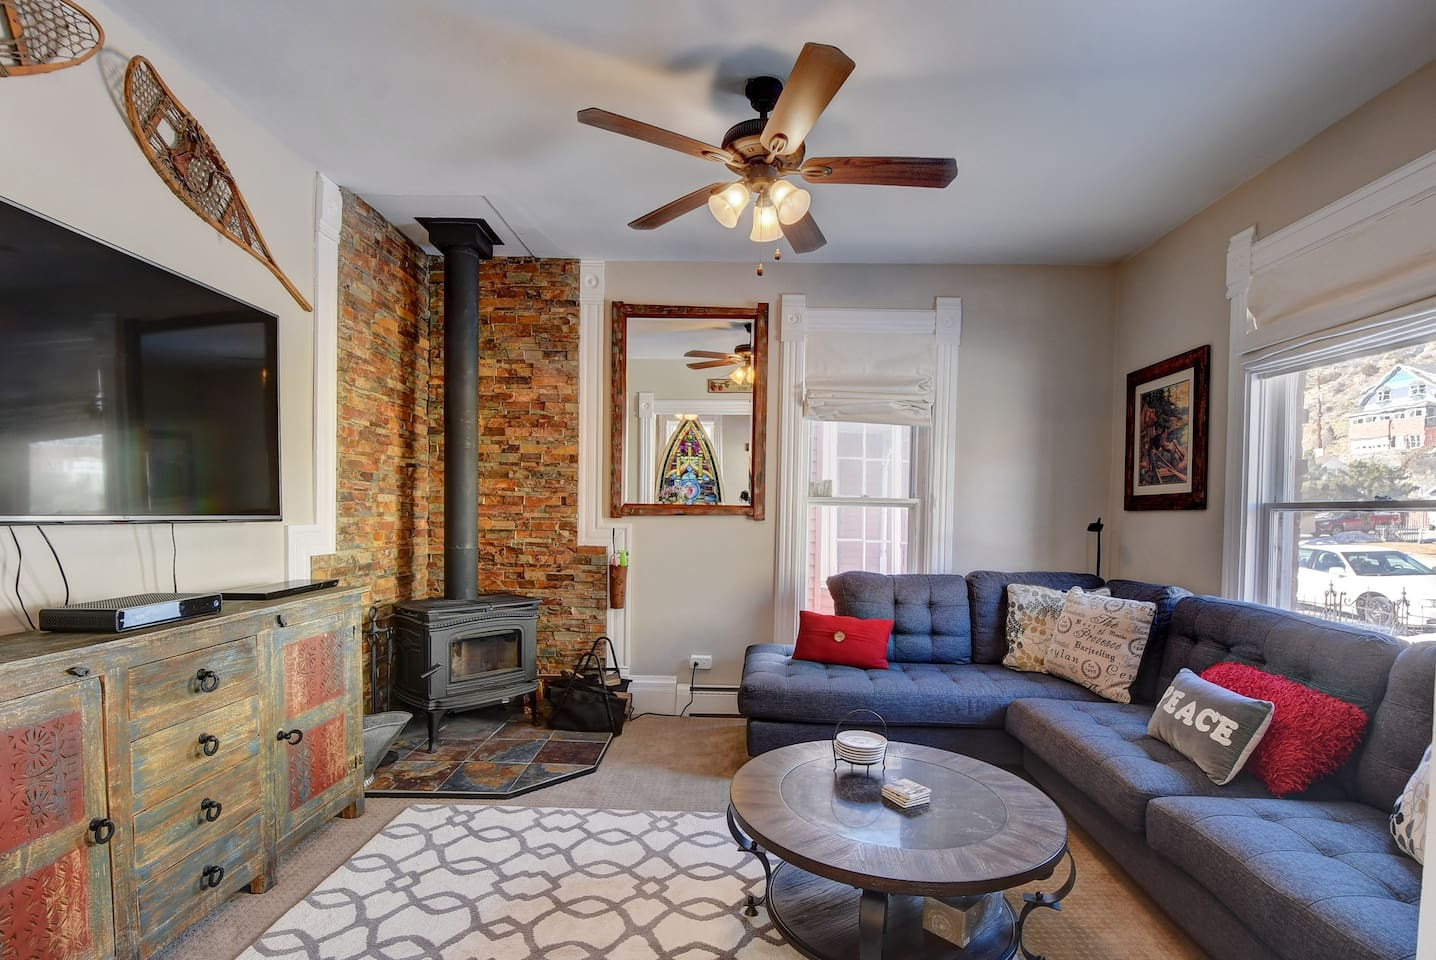 Family Room with wood burning stove. Large couch to enjoy the fire and watch TV.